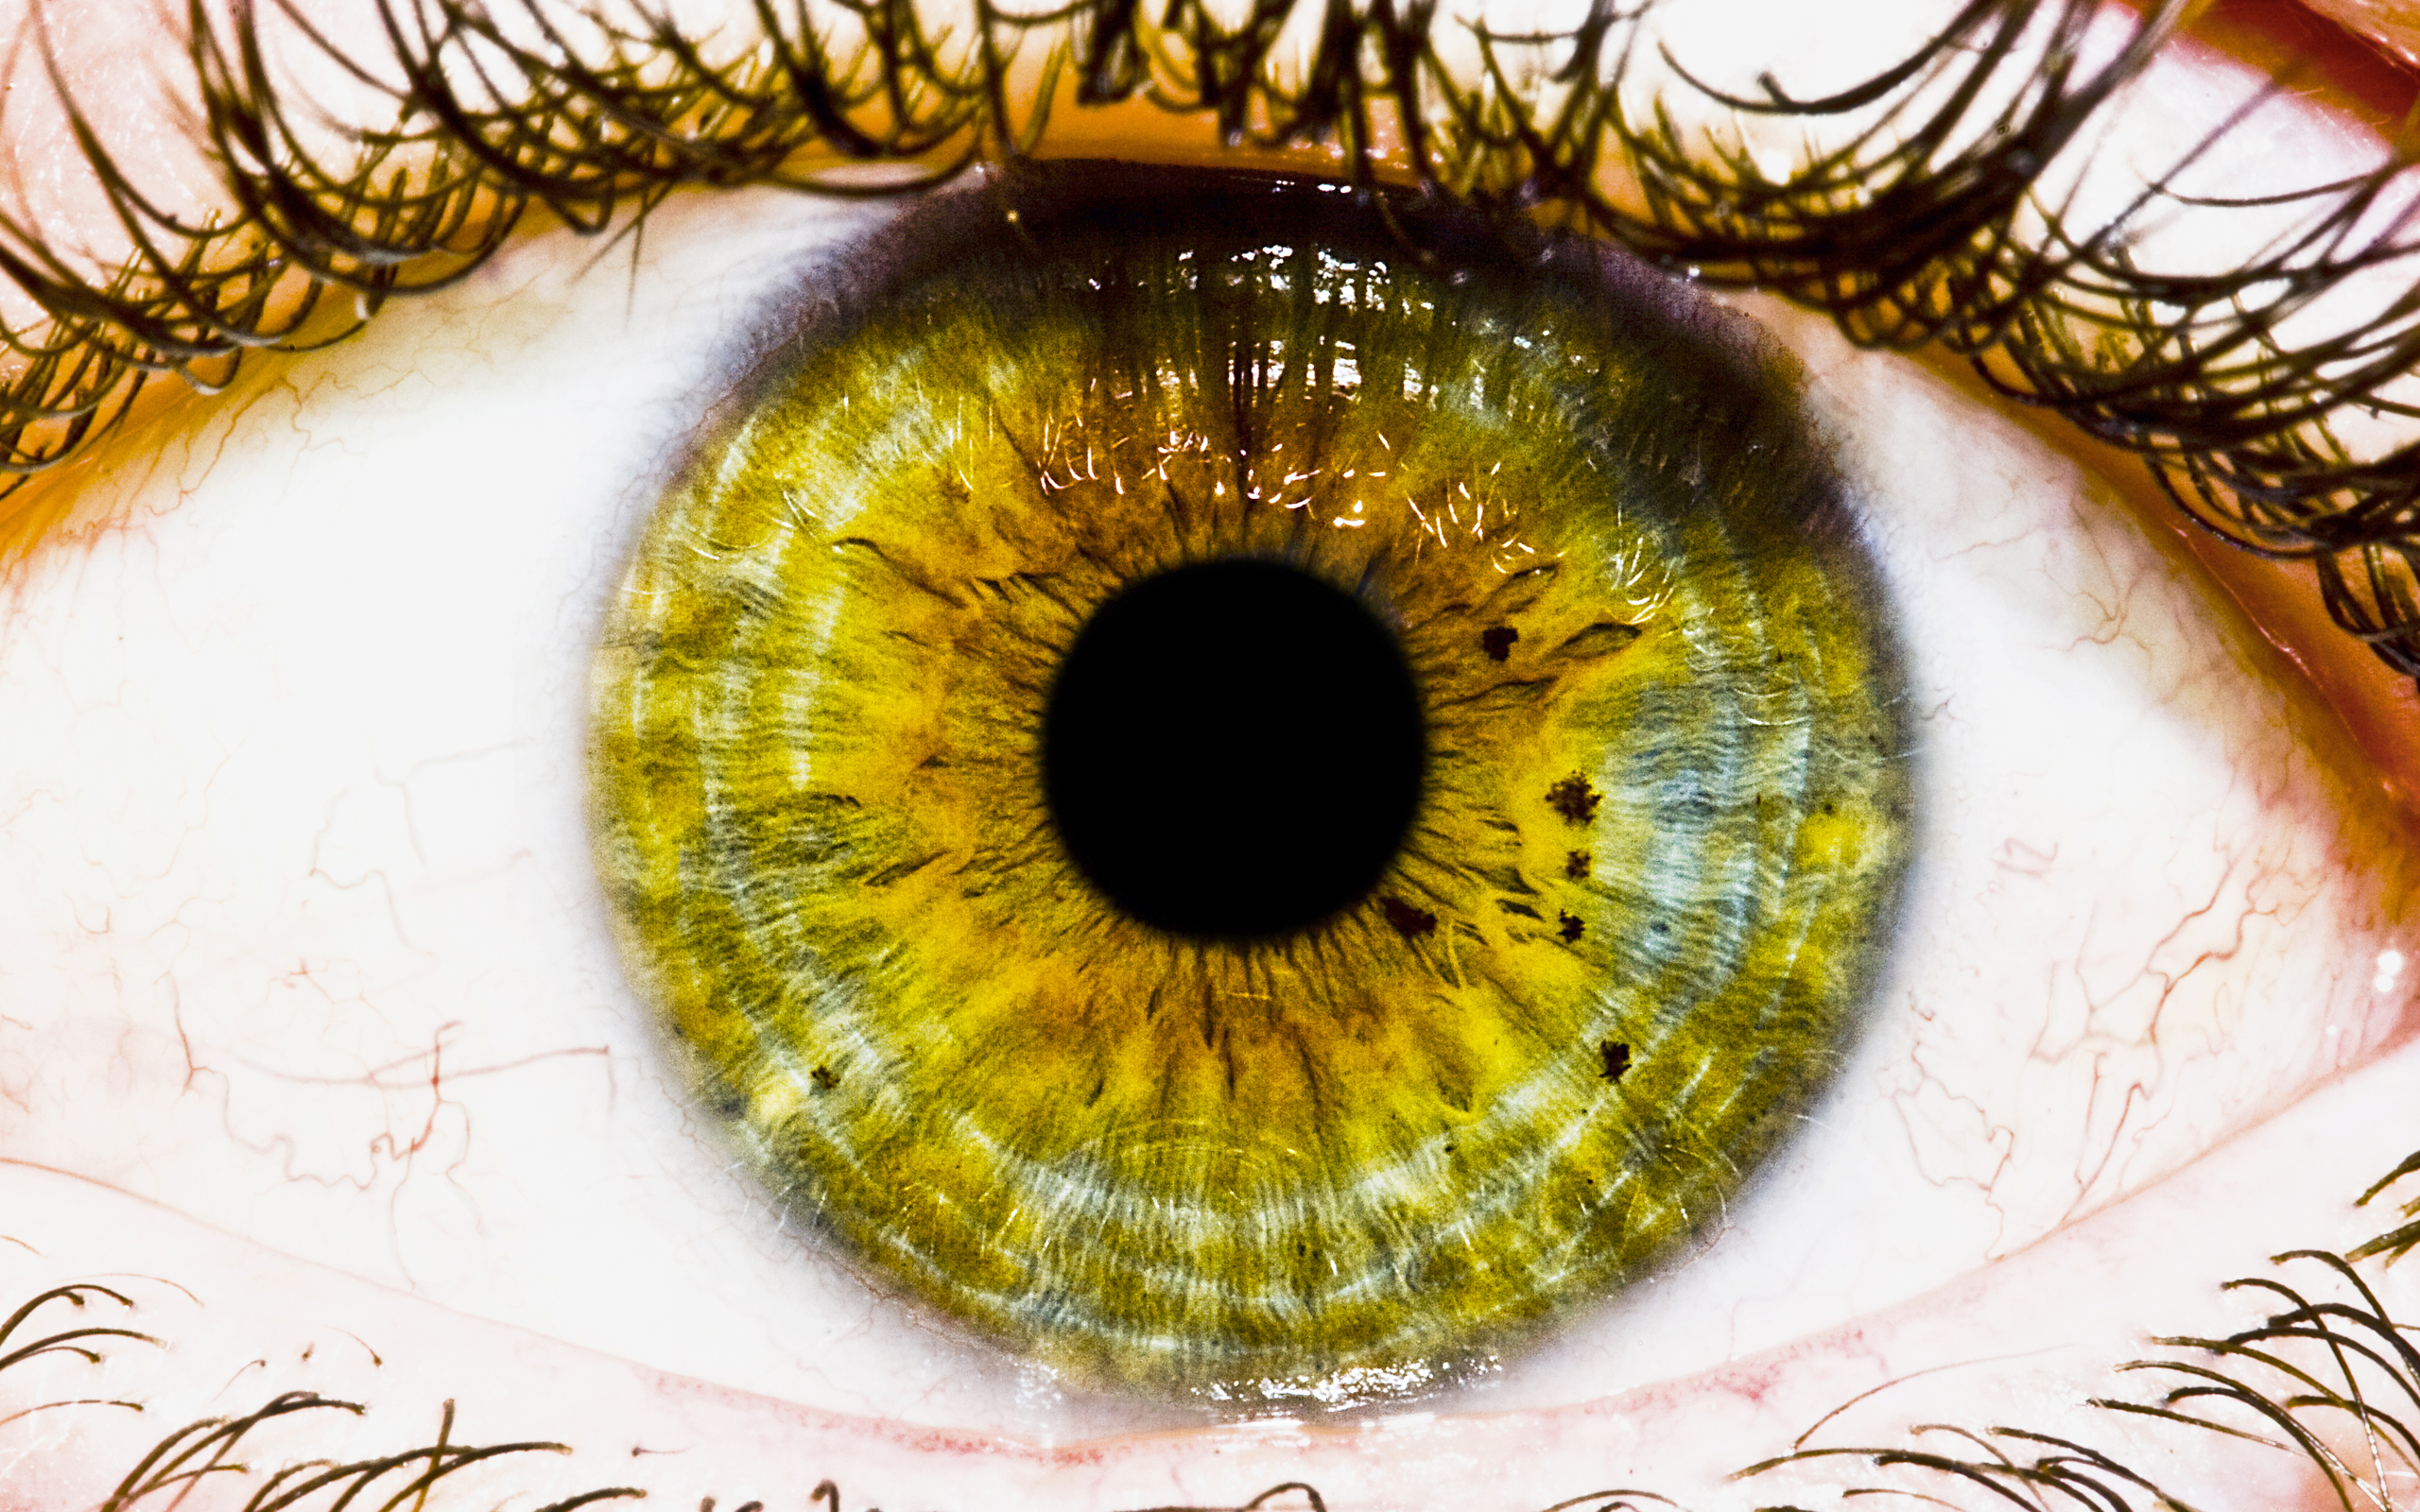 The Eye Wallpapers HD Wallpapers 2560x1600